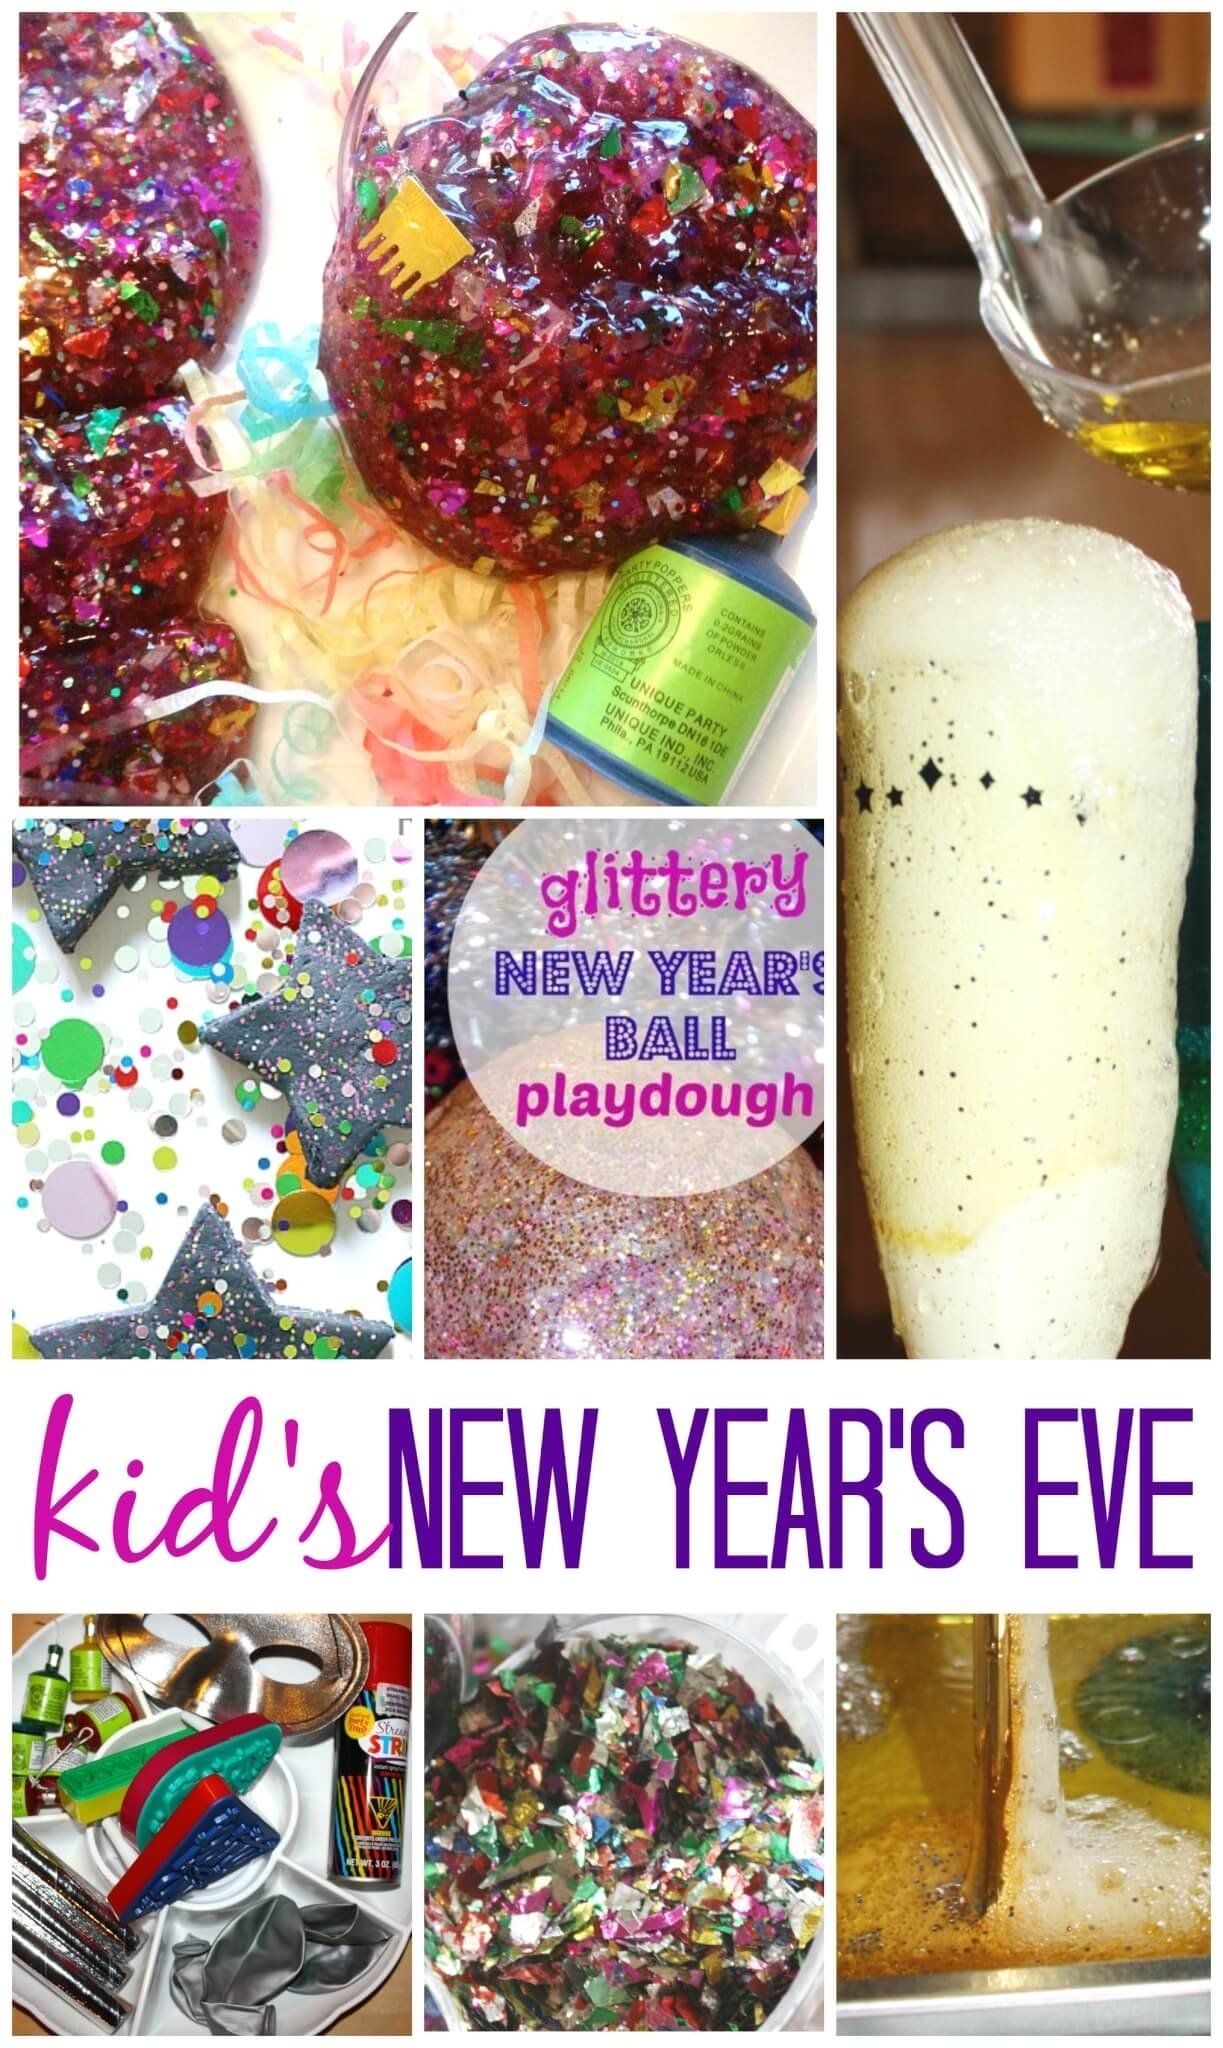 10 Cute New Years Eve Party Ideas For Kids kids new years eve party ideas and activities for new years 6 2020